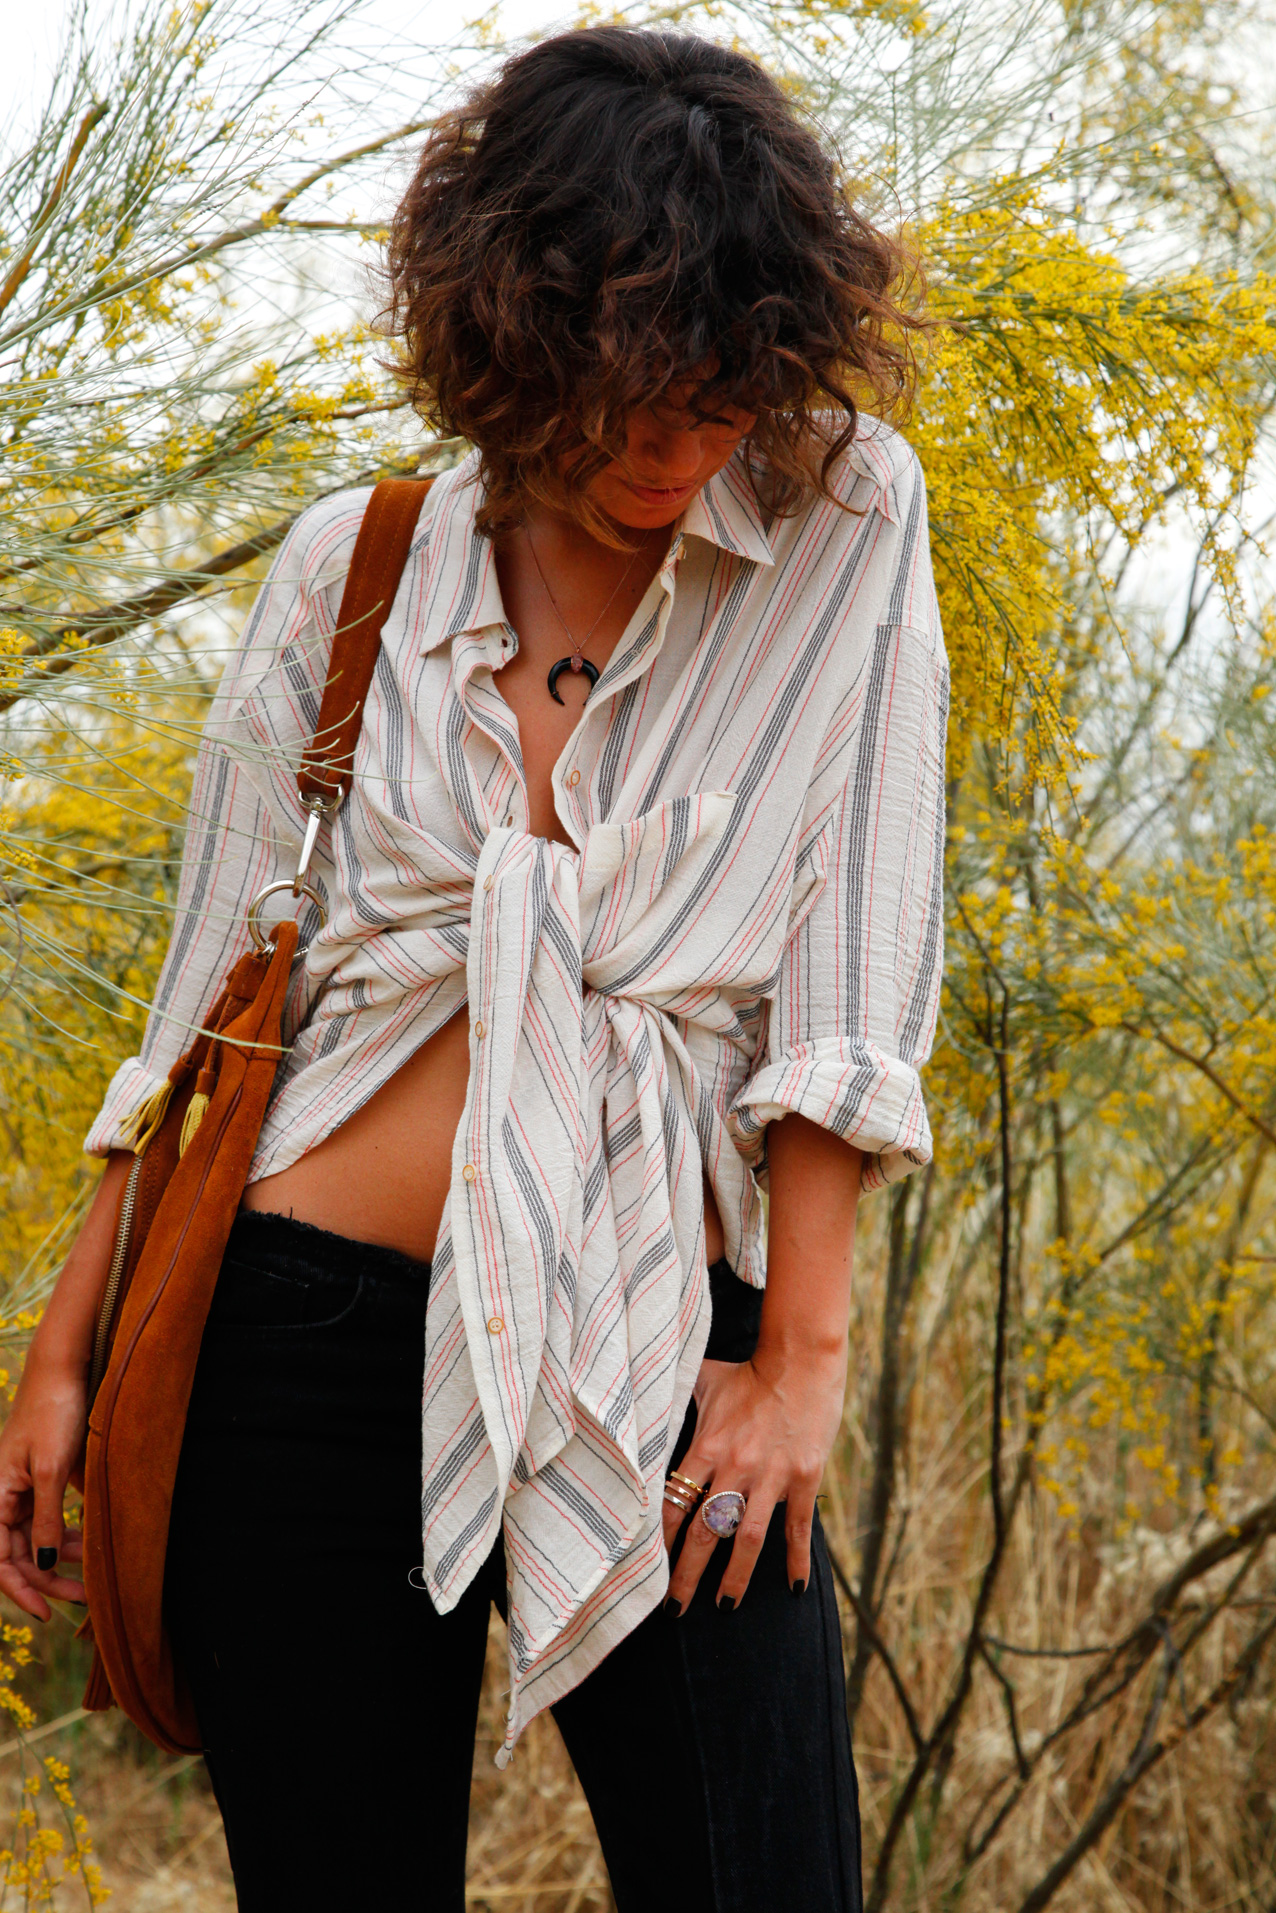 Nattiva-natural_look-sexy-stripped_blouse-ripped_jeans